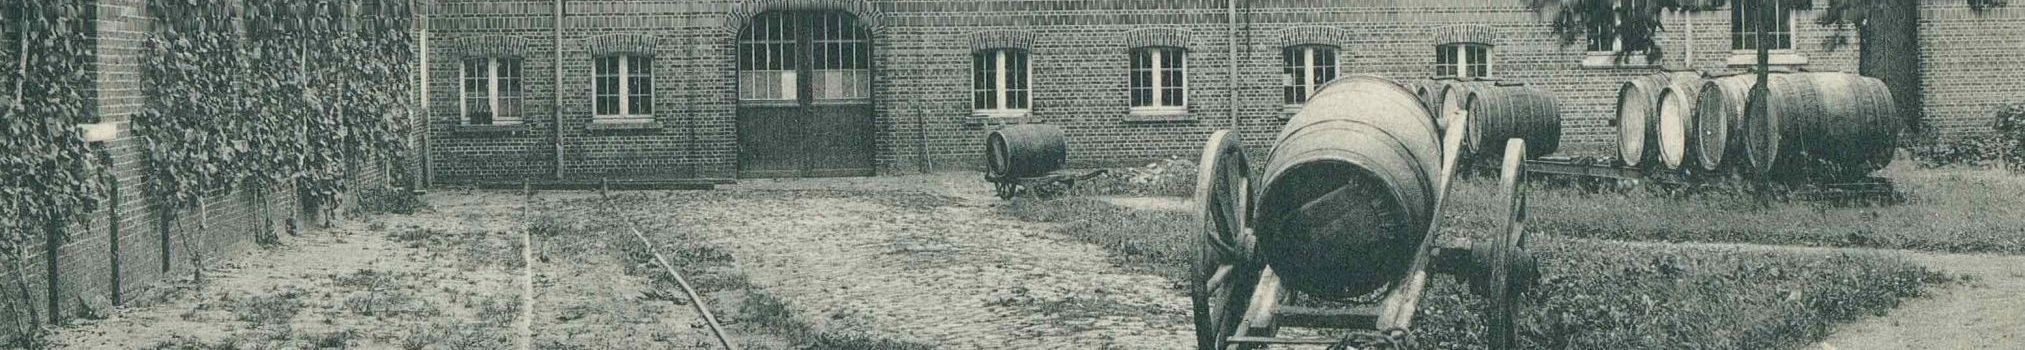 Wooden barrels at Westmalle brewery at the start of the 20th century